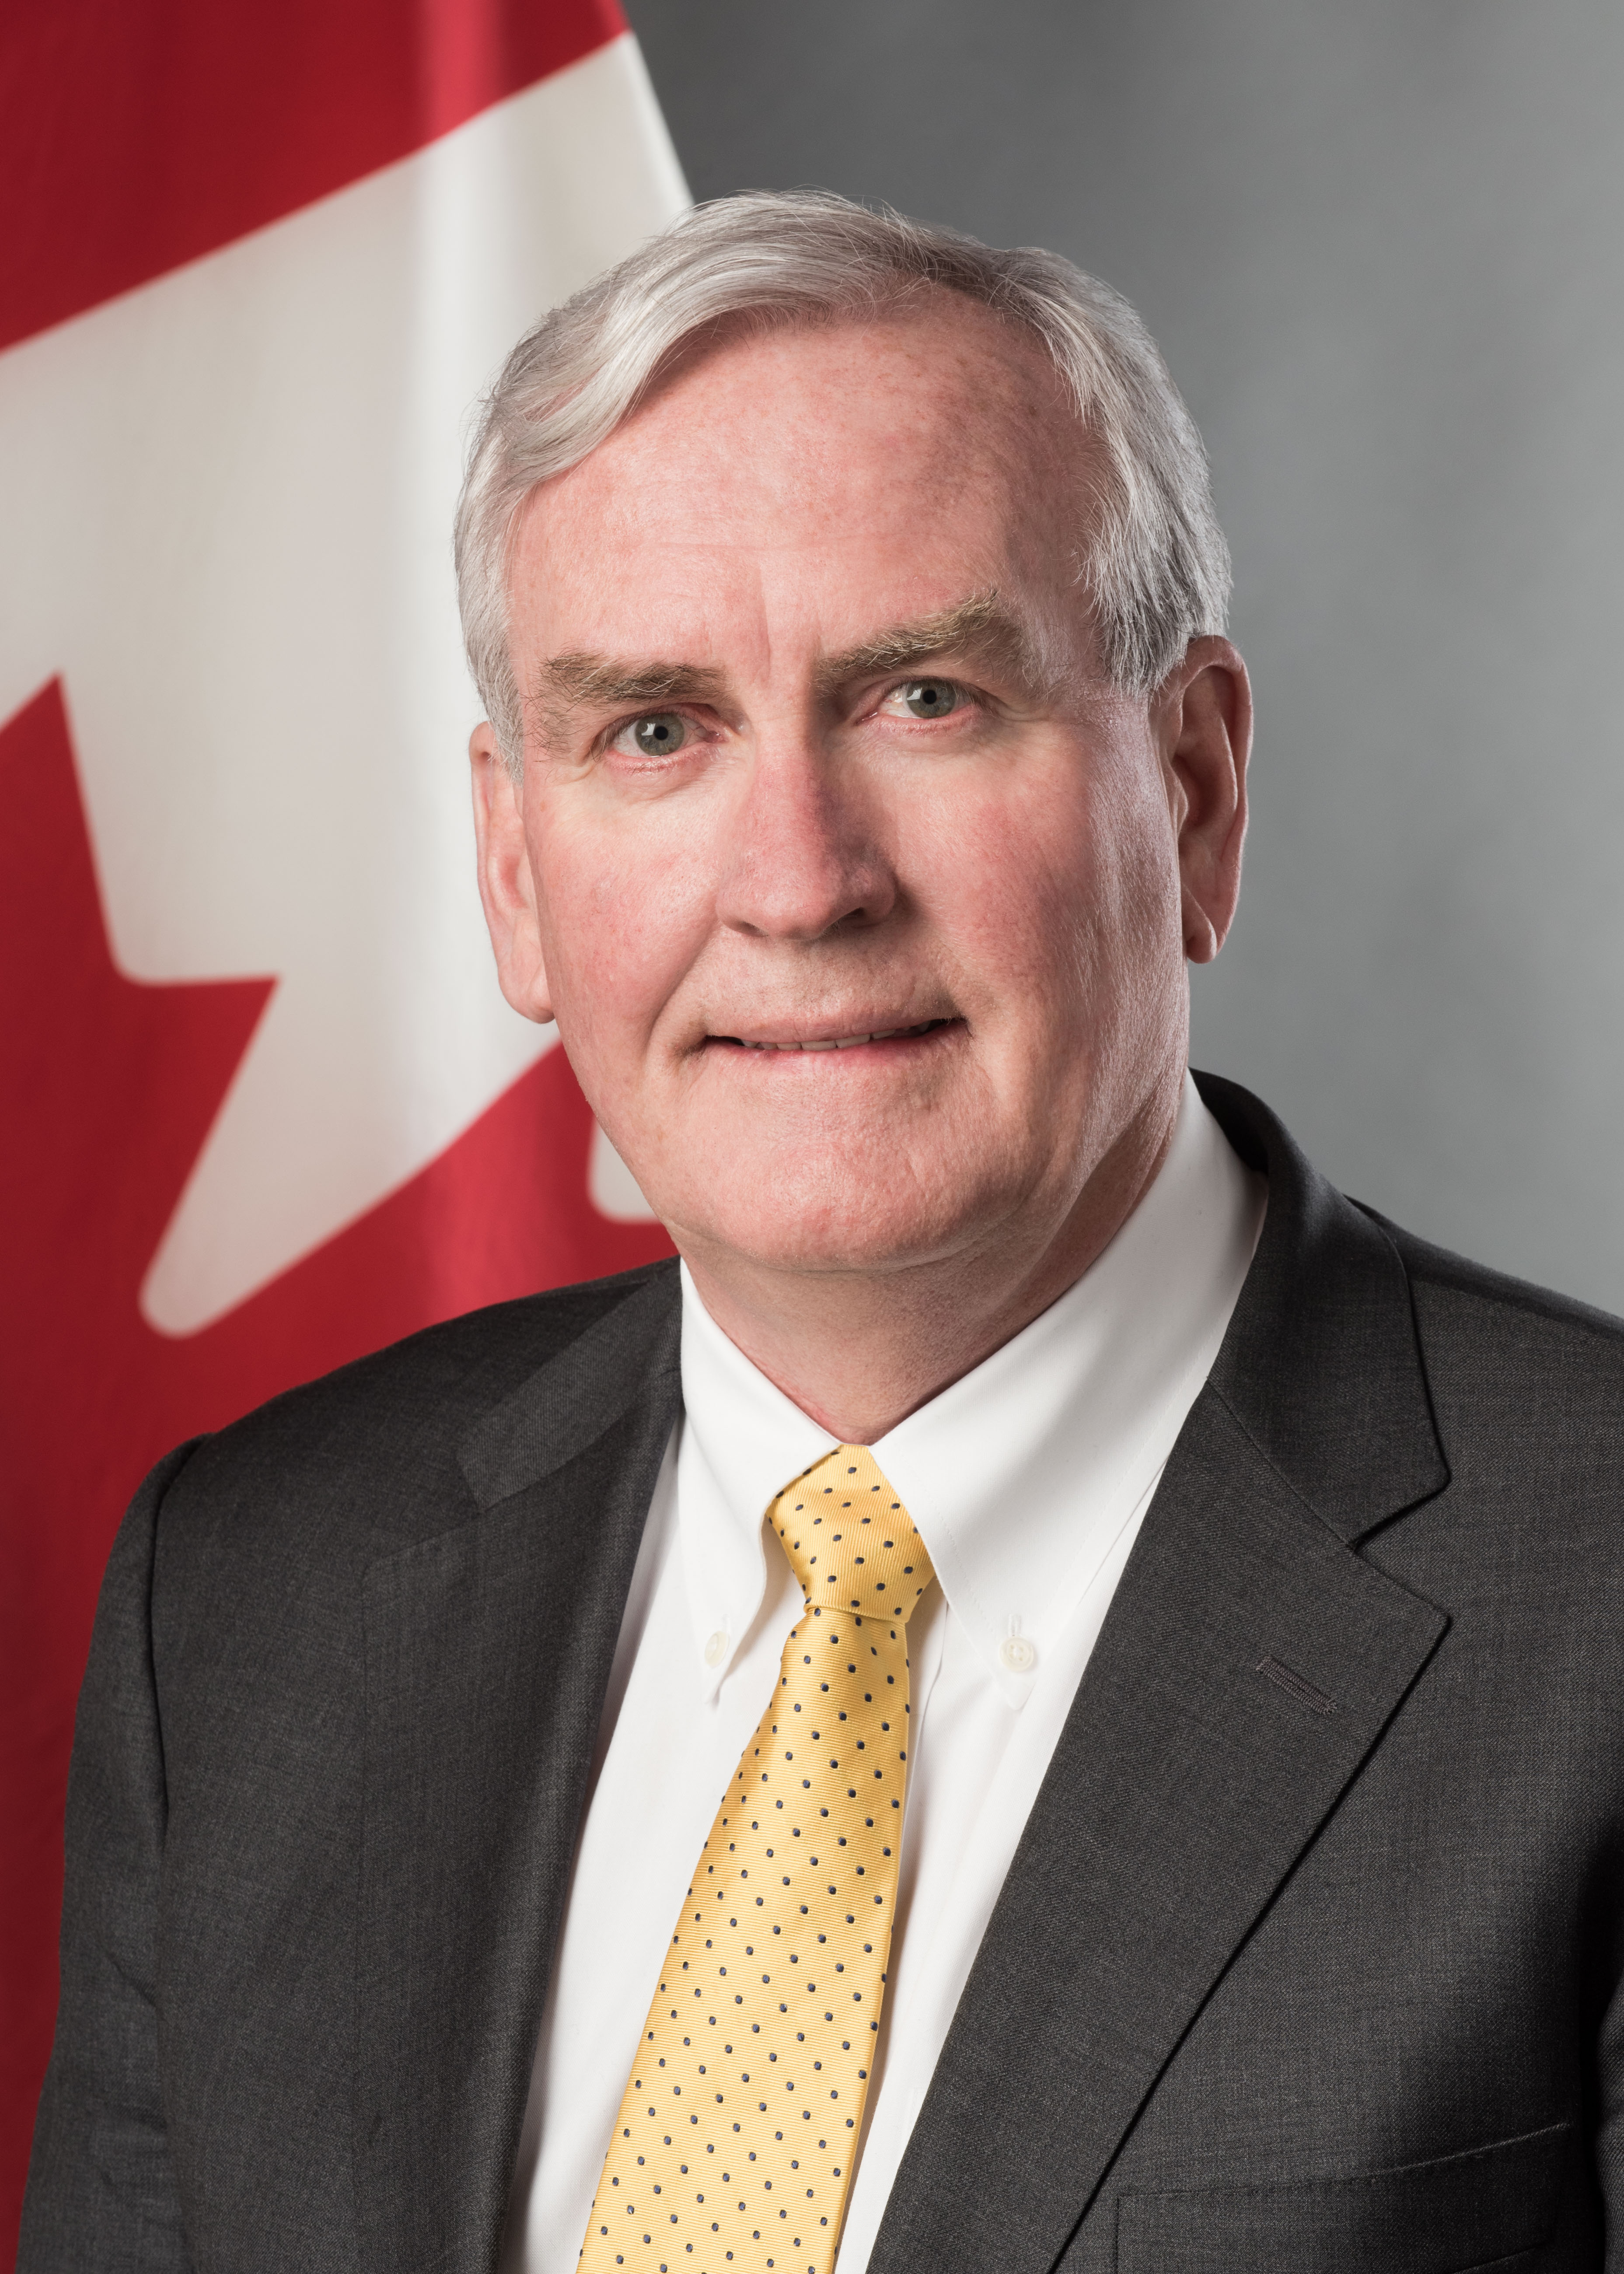 Kevin Michael Vickers, Ambassador of Canada to Ireland